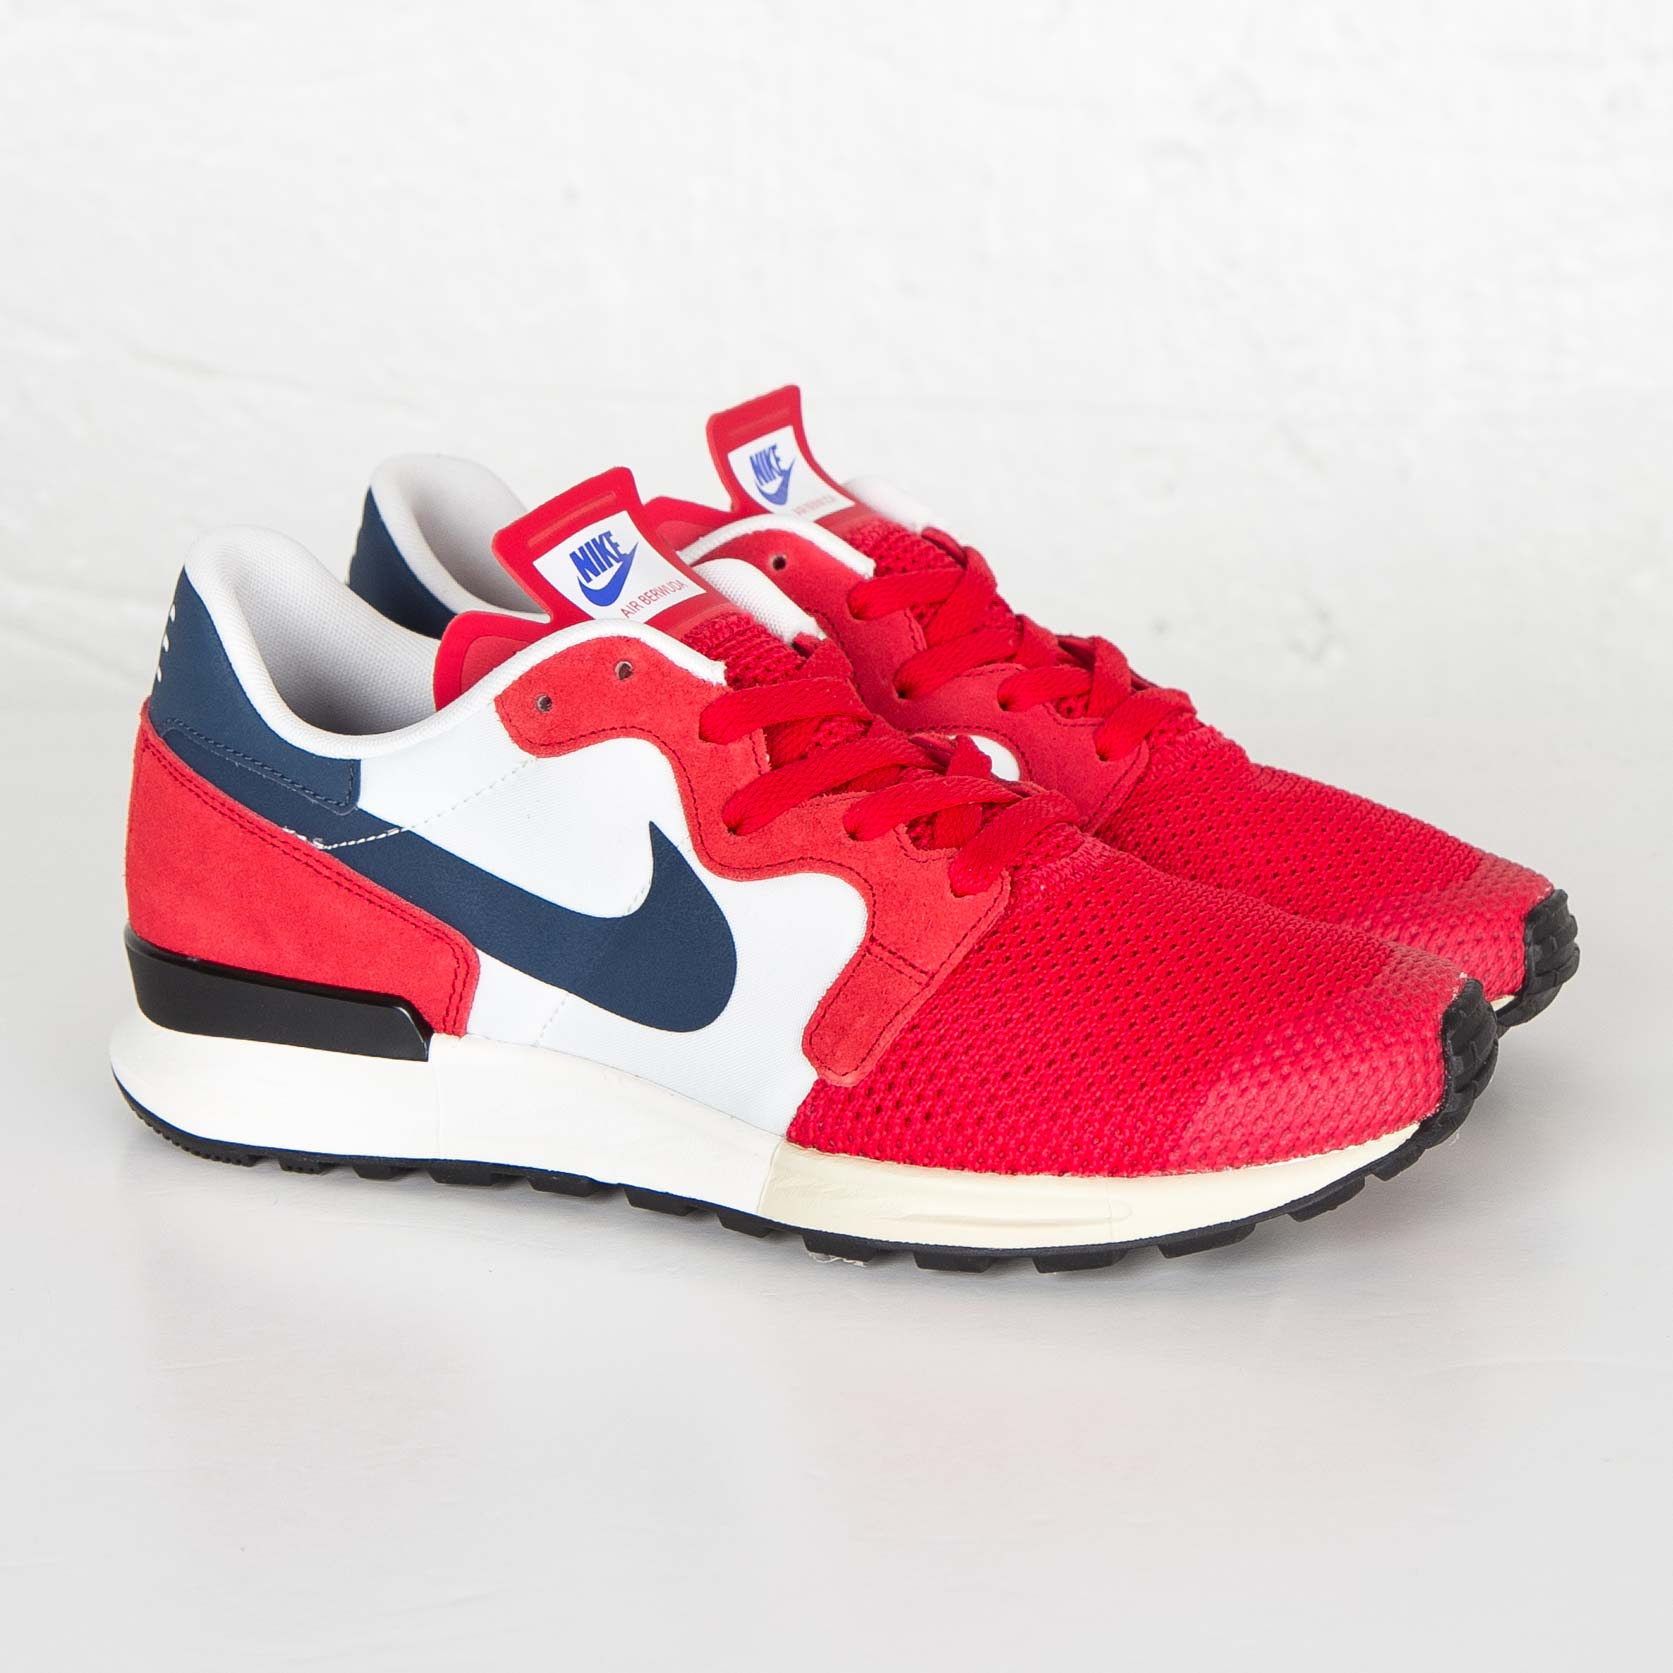 Nike Air Berwuda Women University Red Blue Squadron